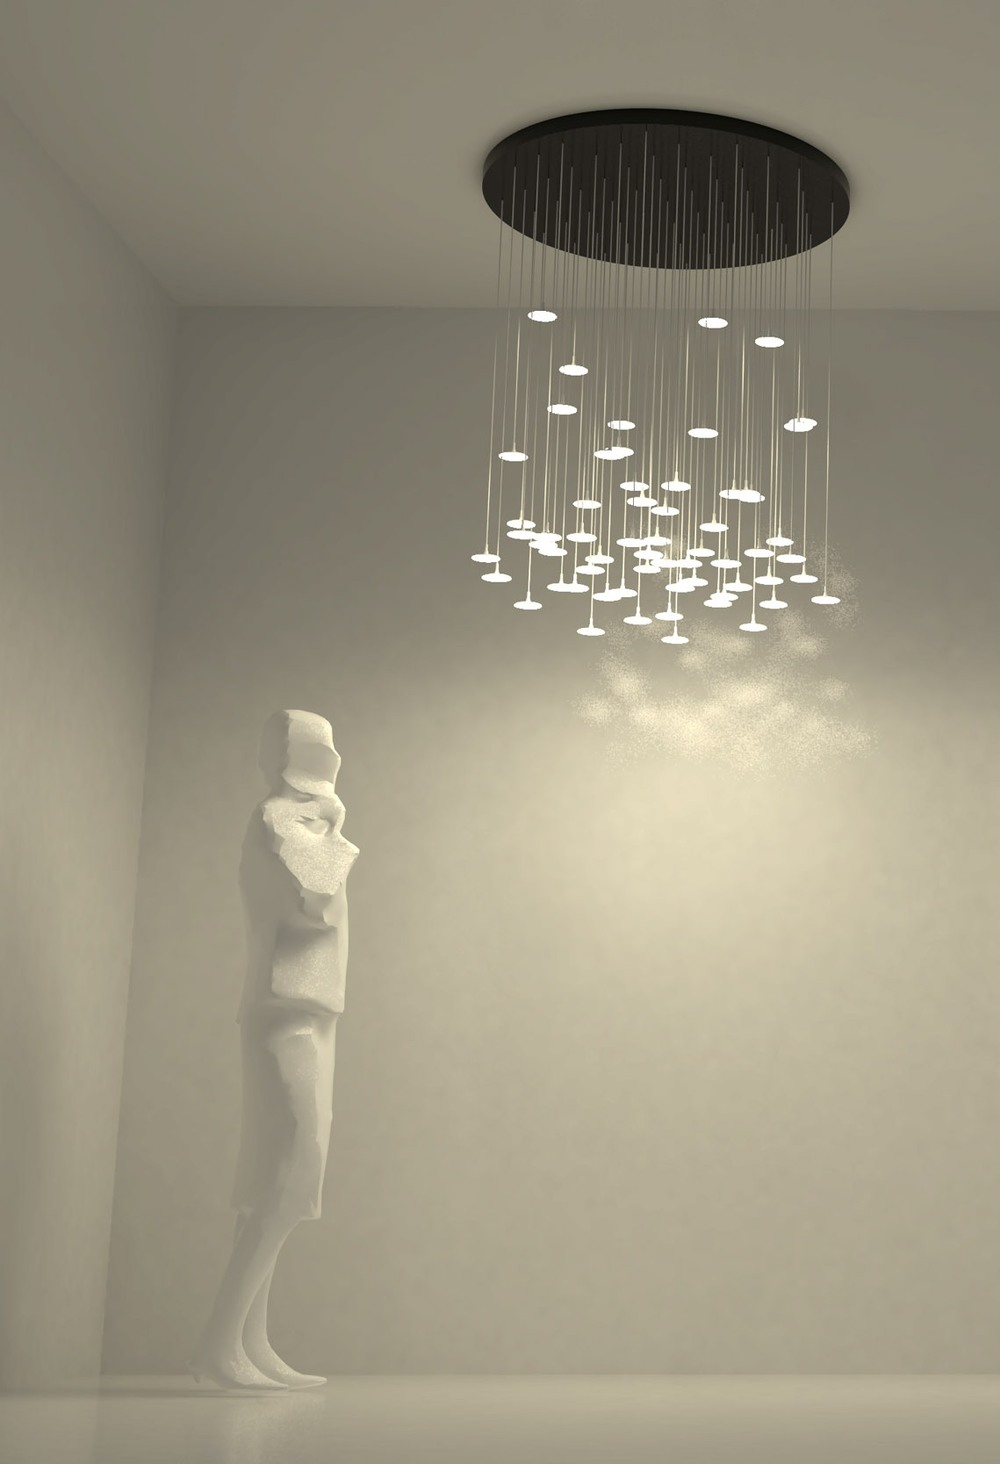 My client purchased a Rain 61 suspended lighting system for a stairwell in his California home.